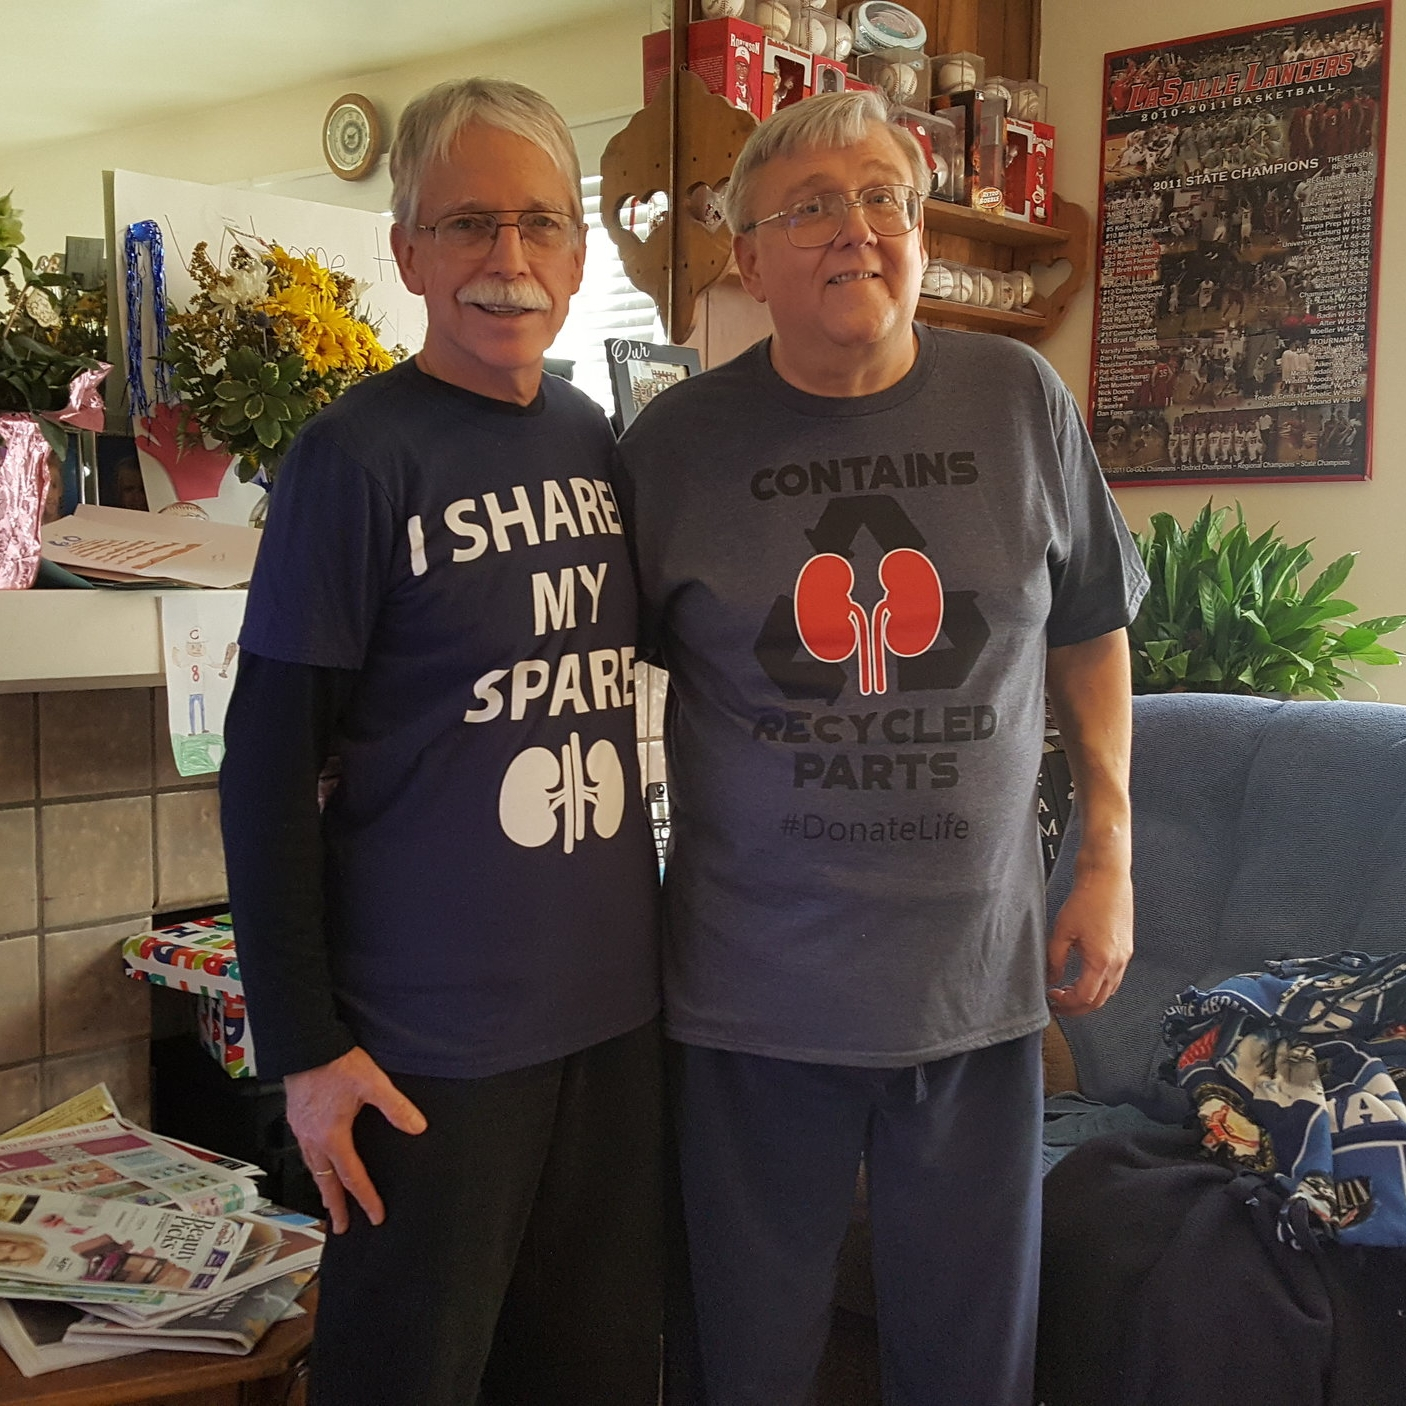 Don Frank, left, learned that he might be retired, but he still had lots of life to share with his brother-in-law Rick.